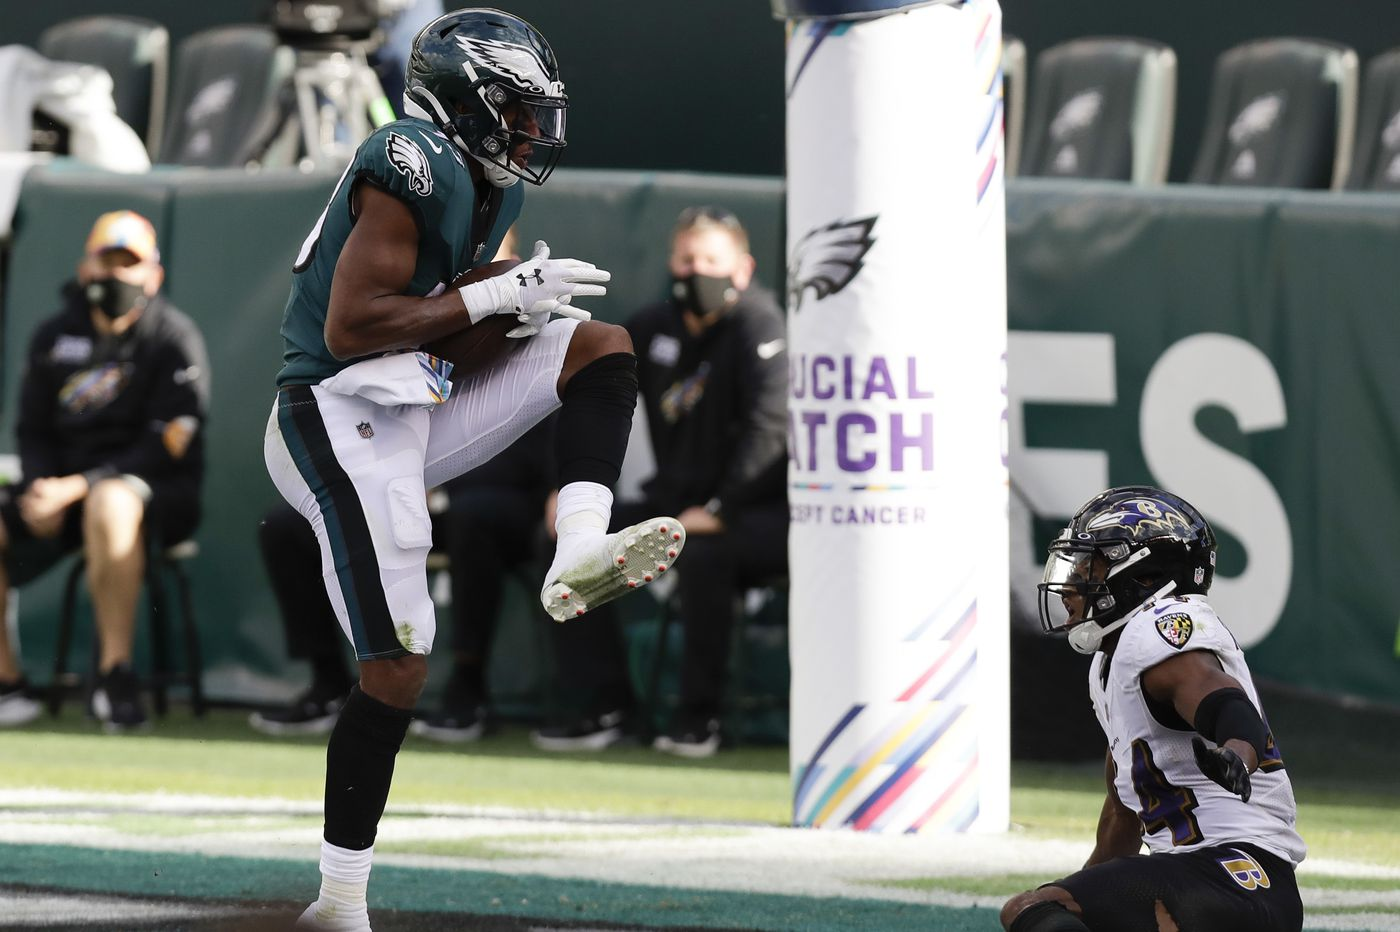 7 reasons to believe in the Eagles | Marcus Hayes